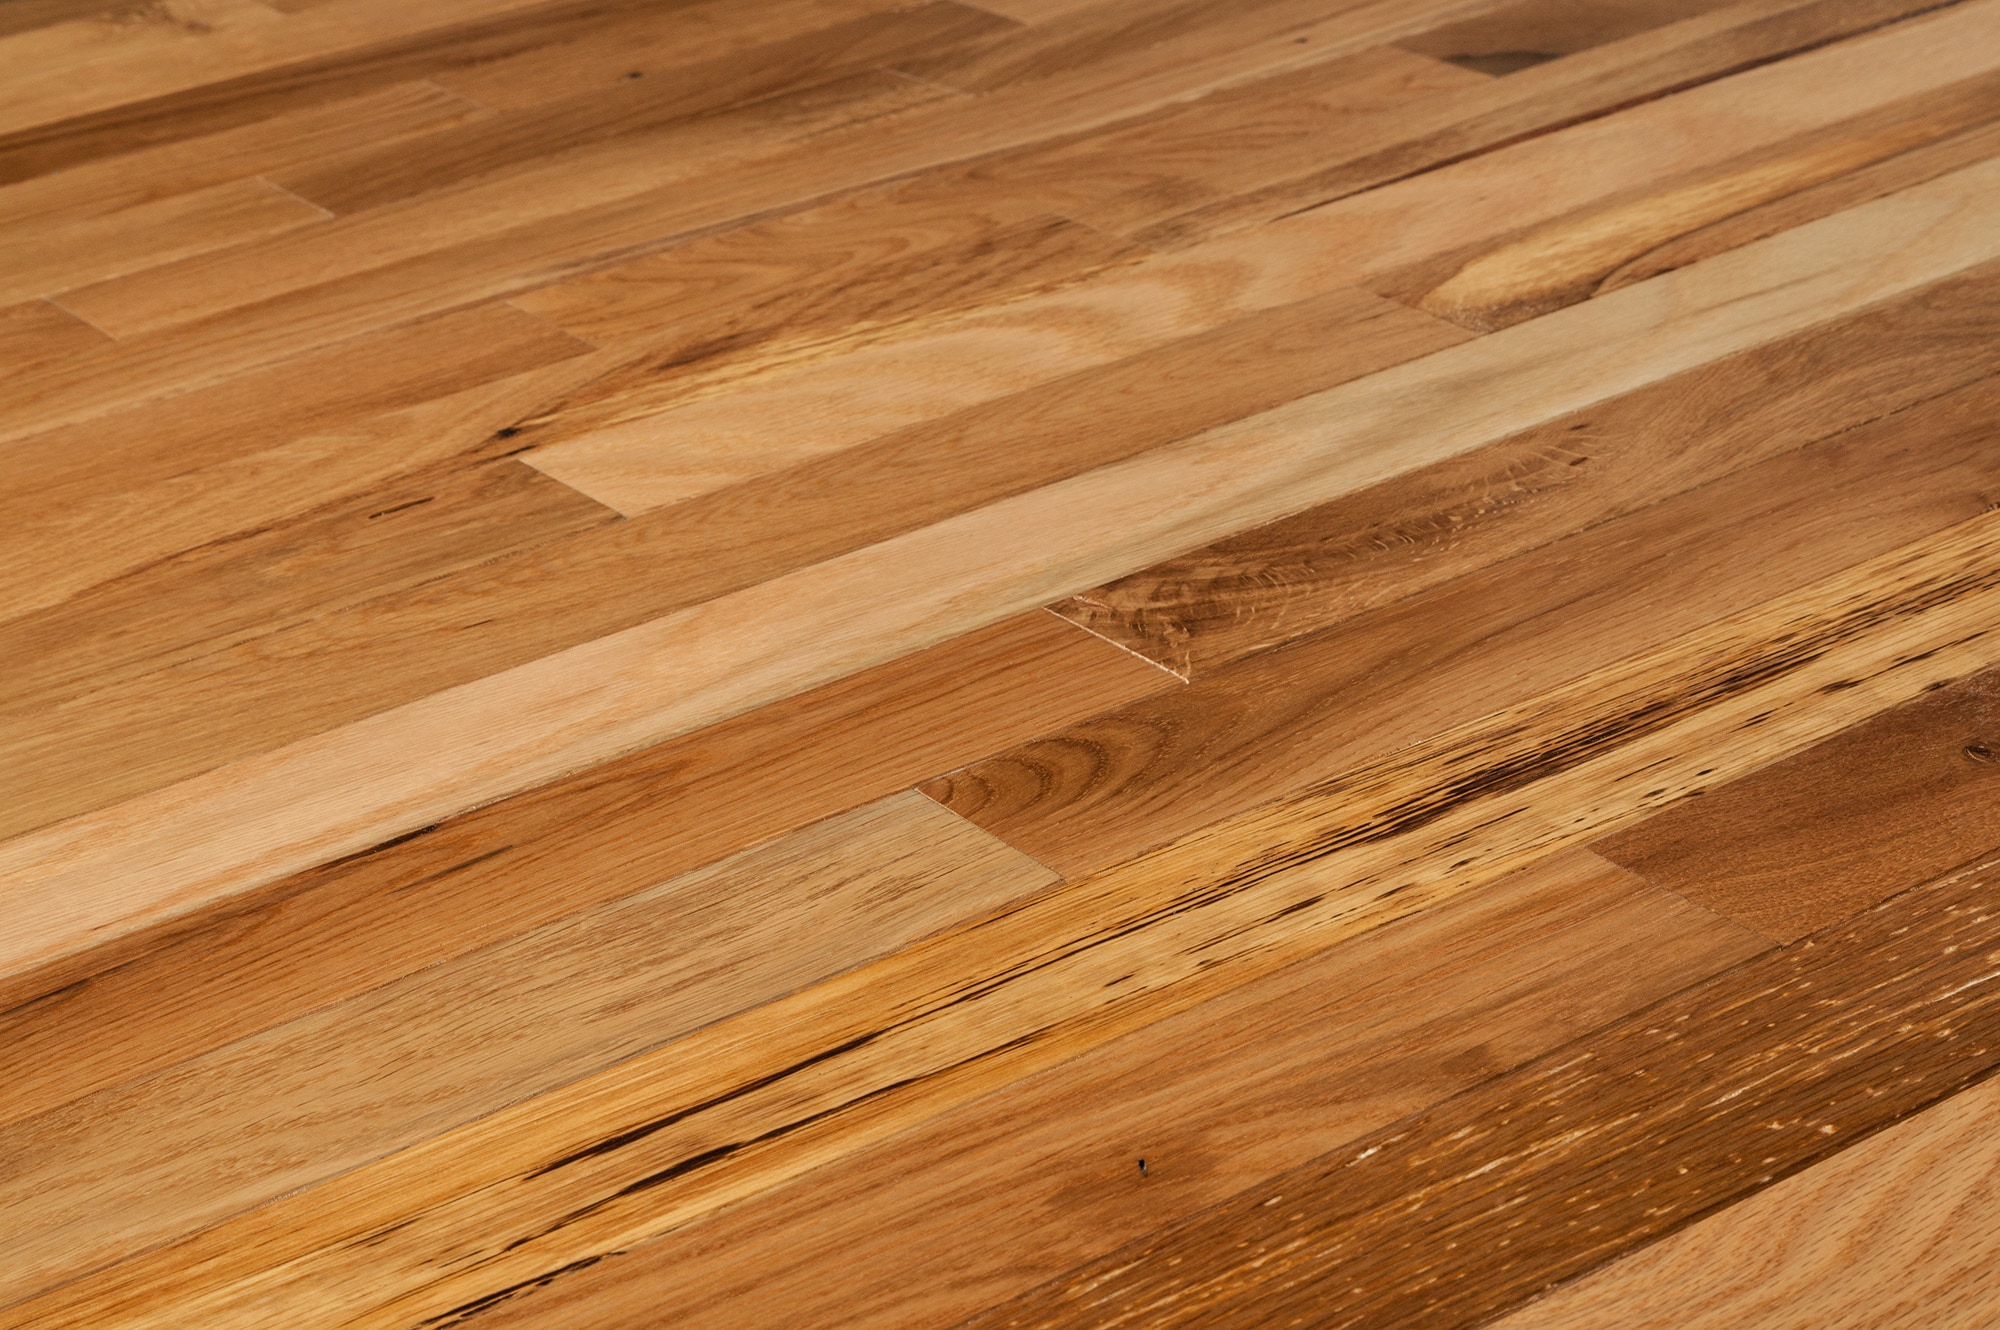 Jasper Hardwood Prefinished Oak Collection Natural Oak